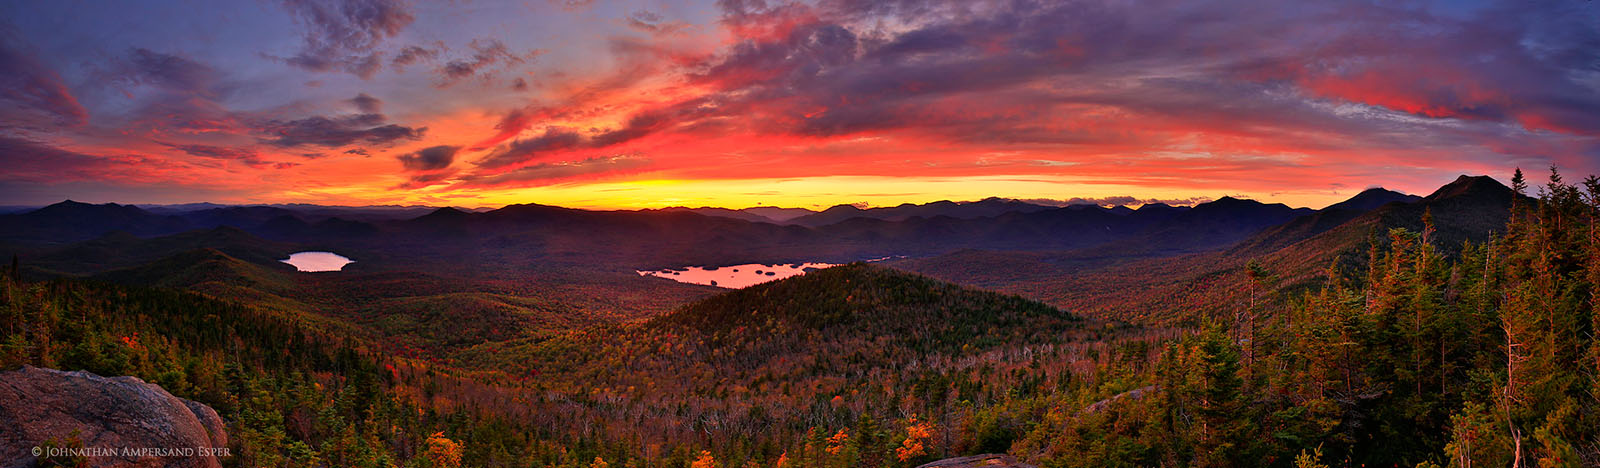 Fall Wallpaper With Owls Sunrise Mt Sunset Over Elk Lake And High Peaks